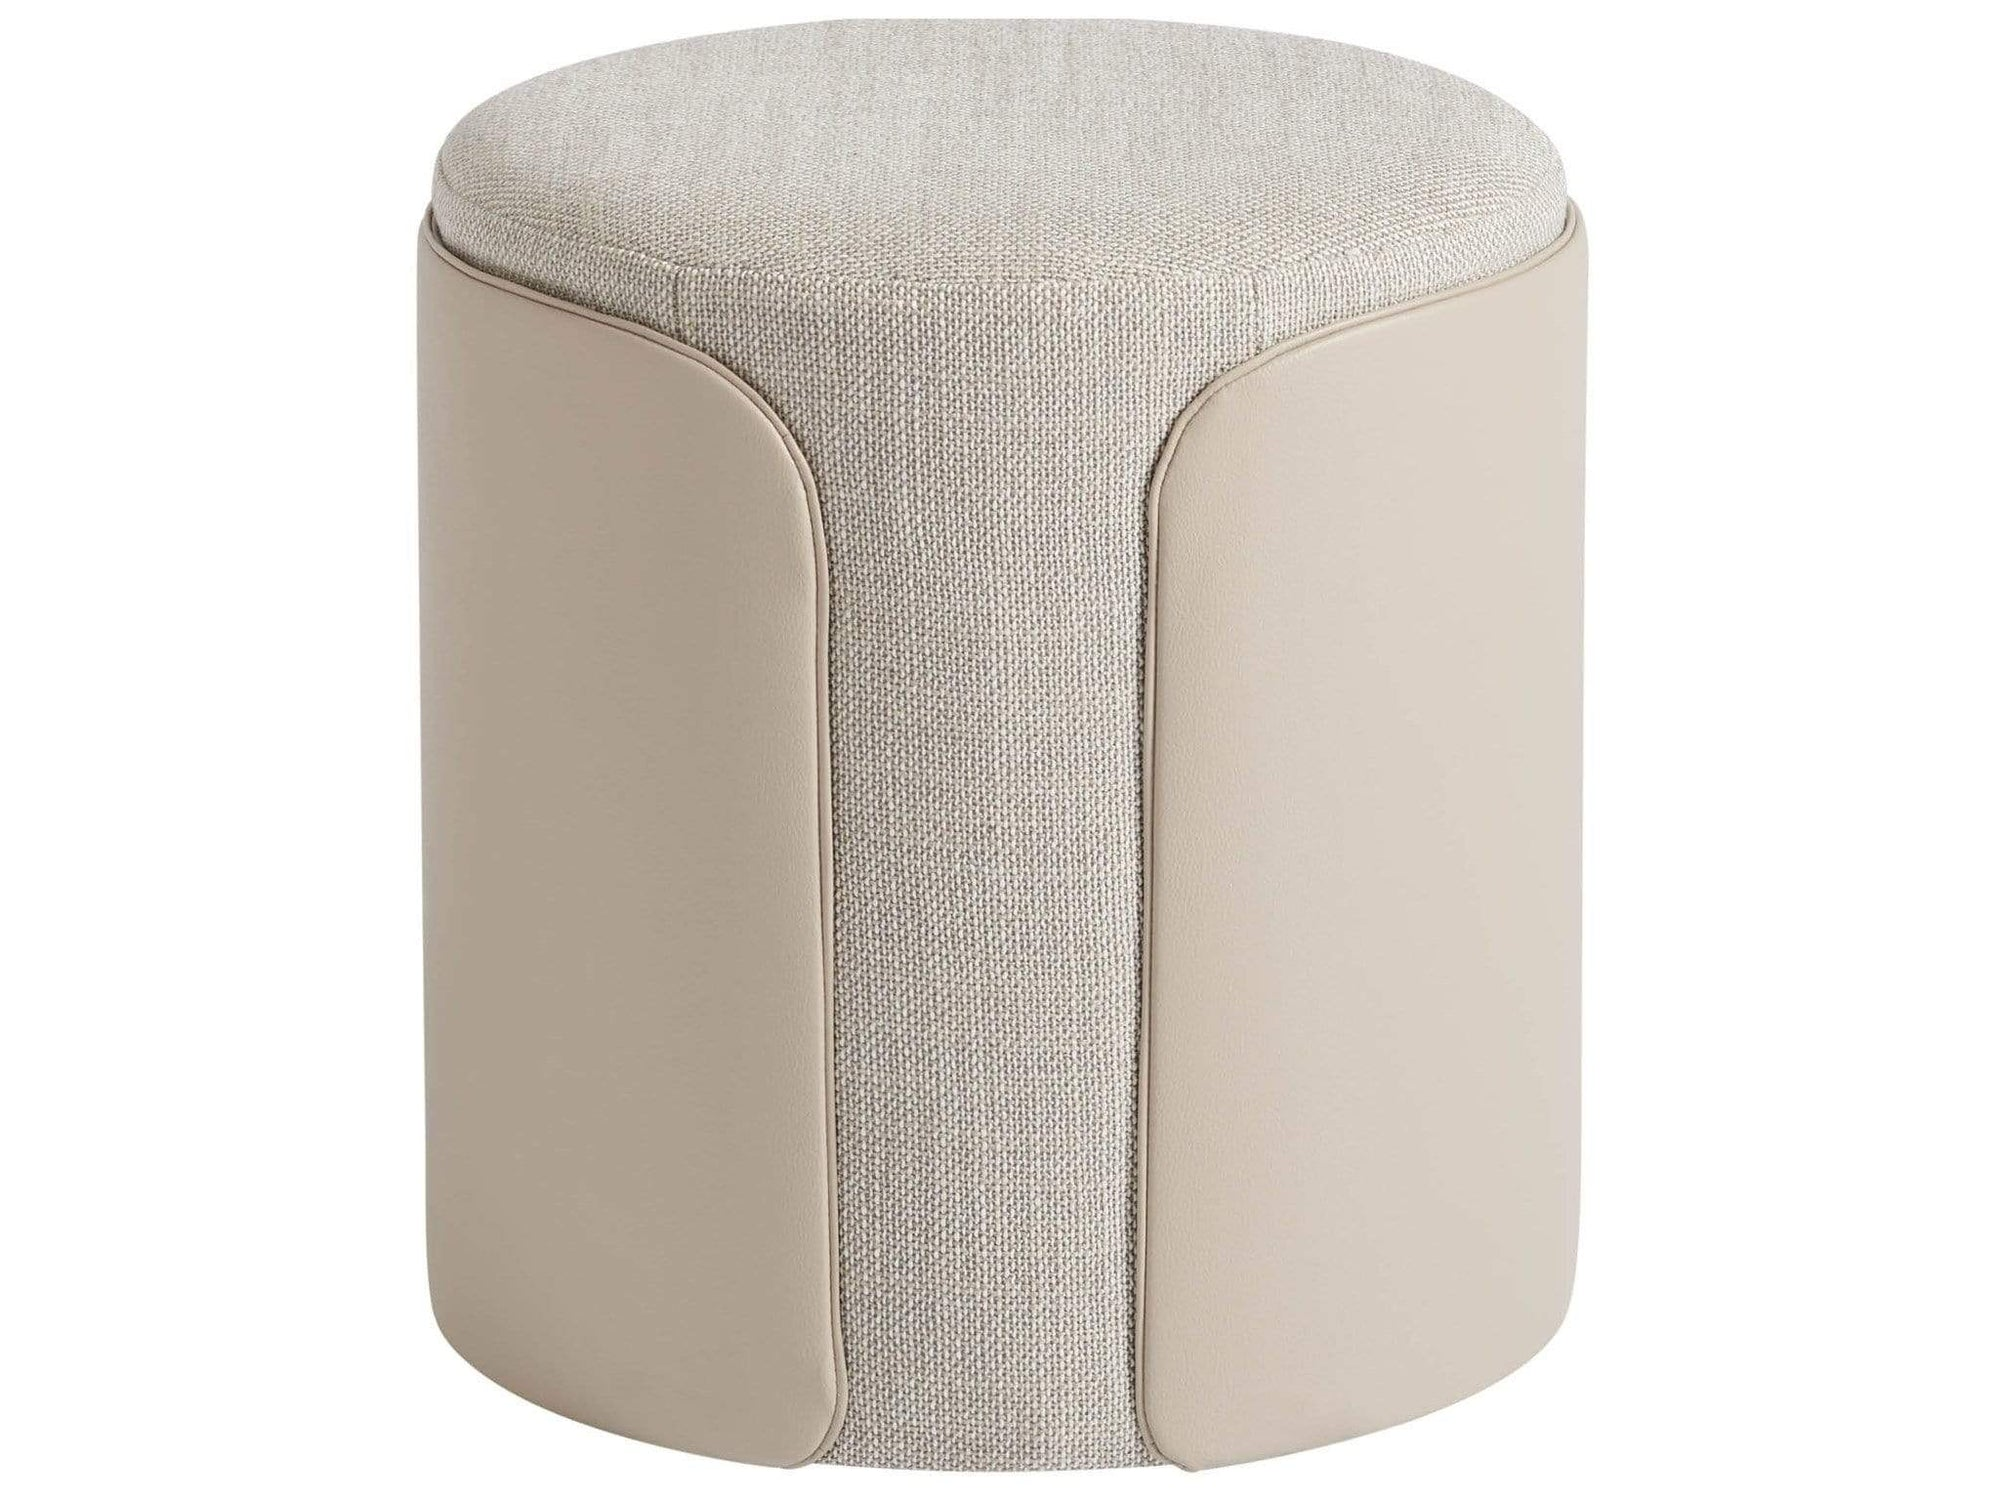 Alchemy Living Alchemy Living Urbain Valencia Scatter Stool - Beige 807223